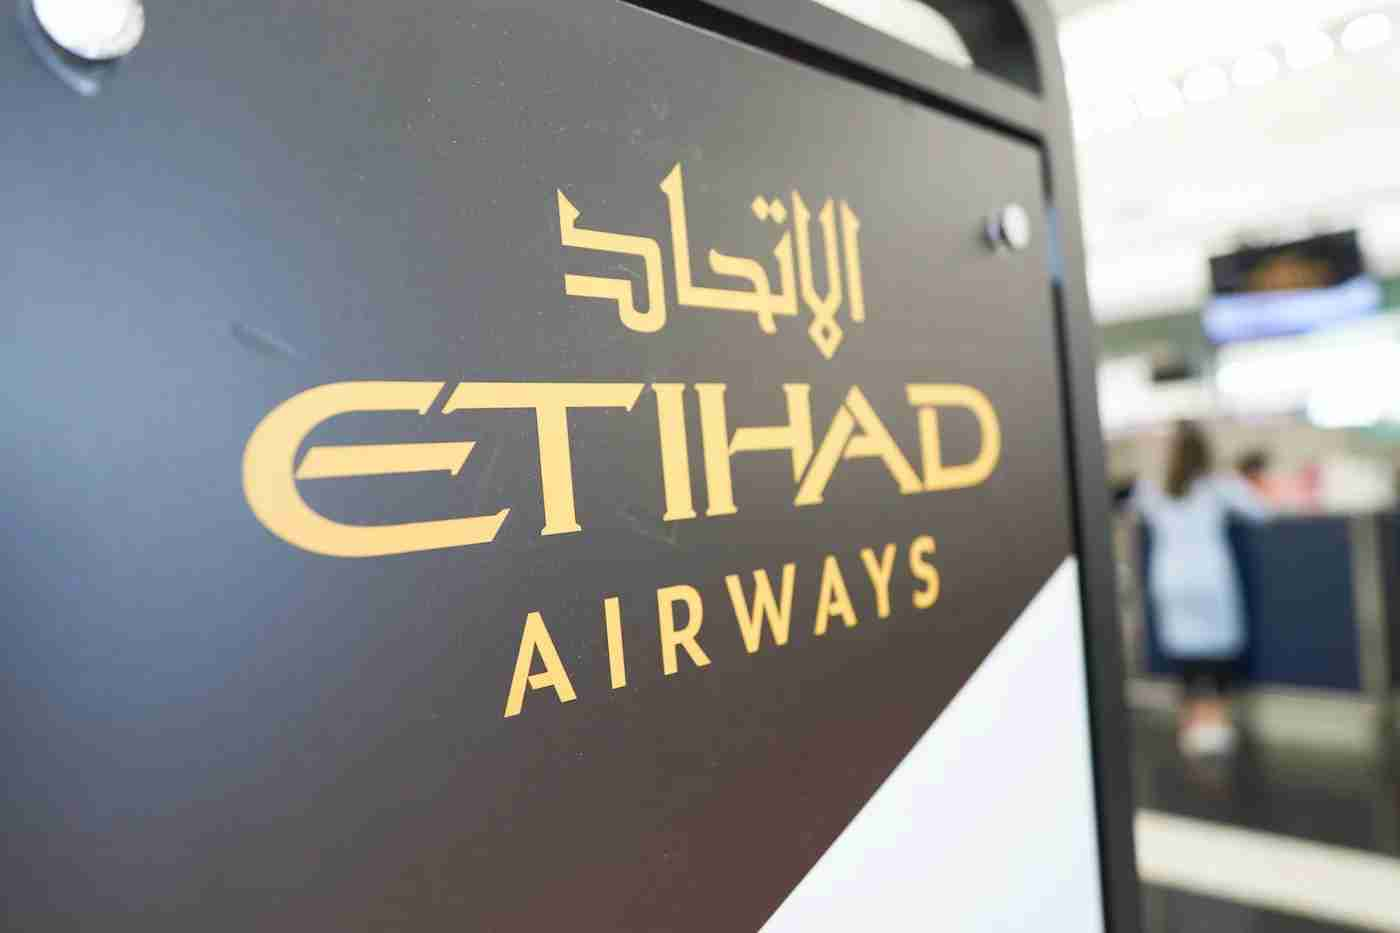 Etihad Airways sign at an airport